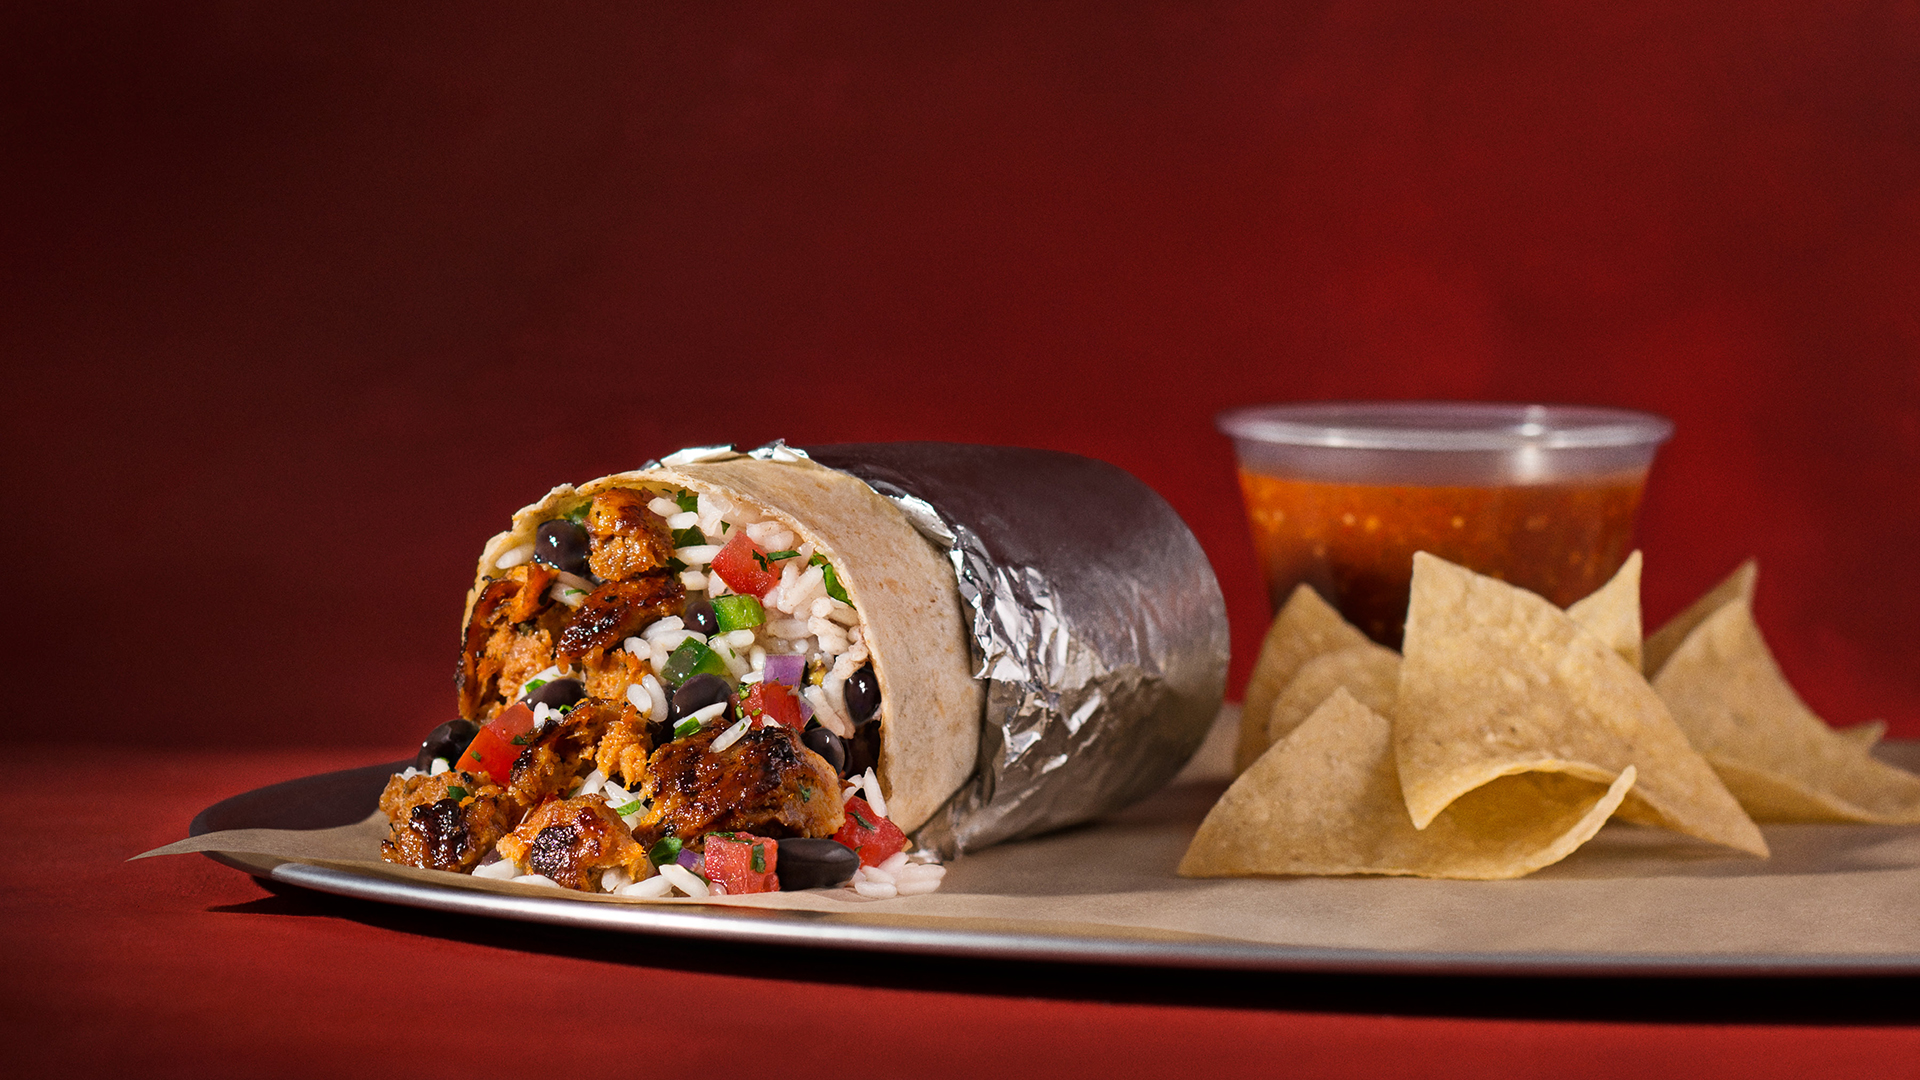 Chipotle's $3 burrito Halloween promotion - TODAY.com